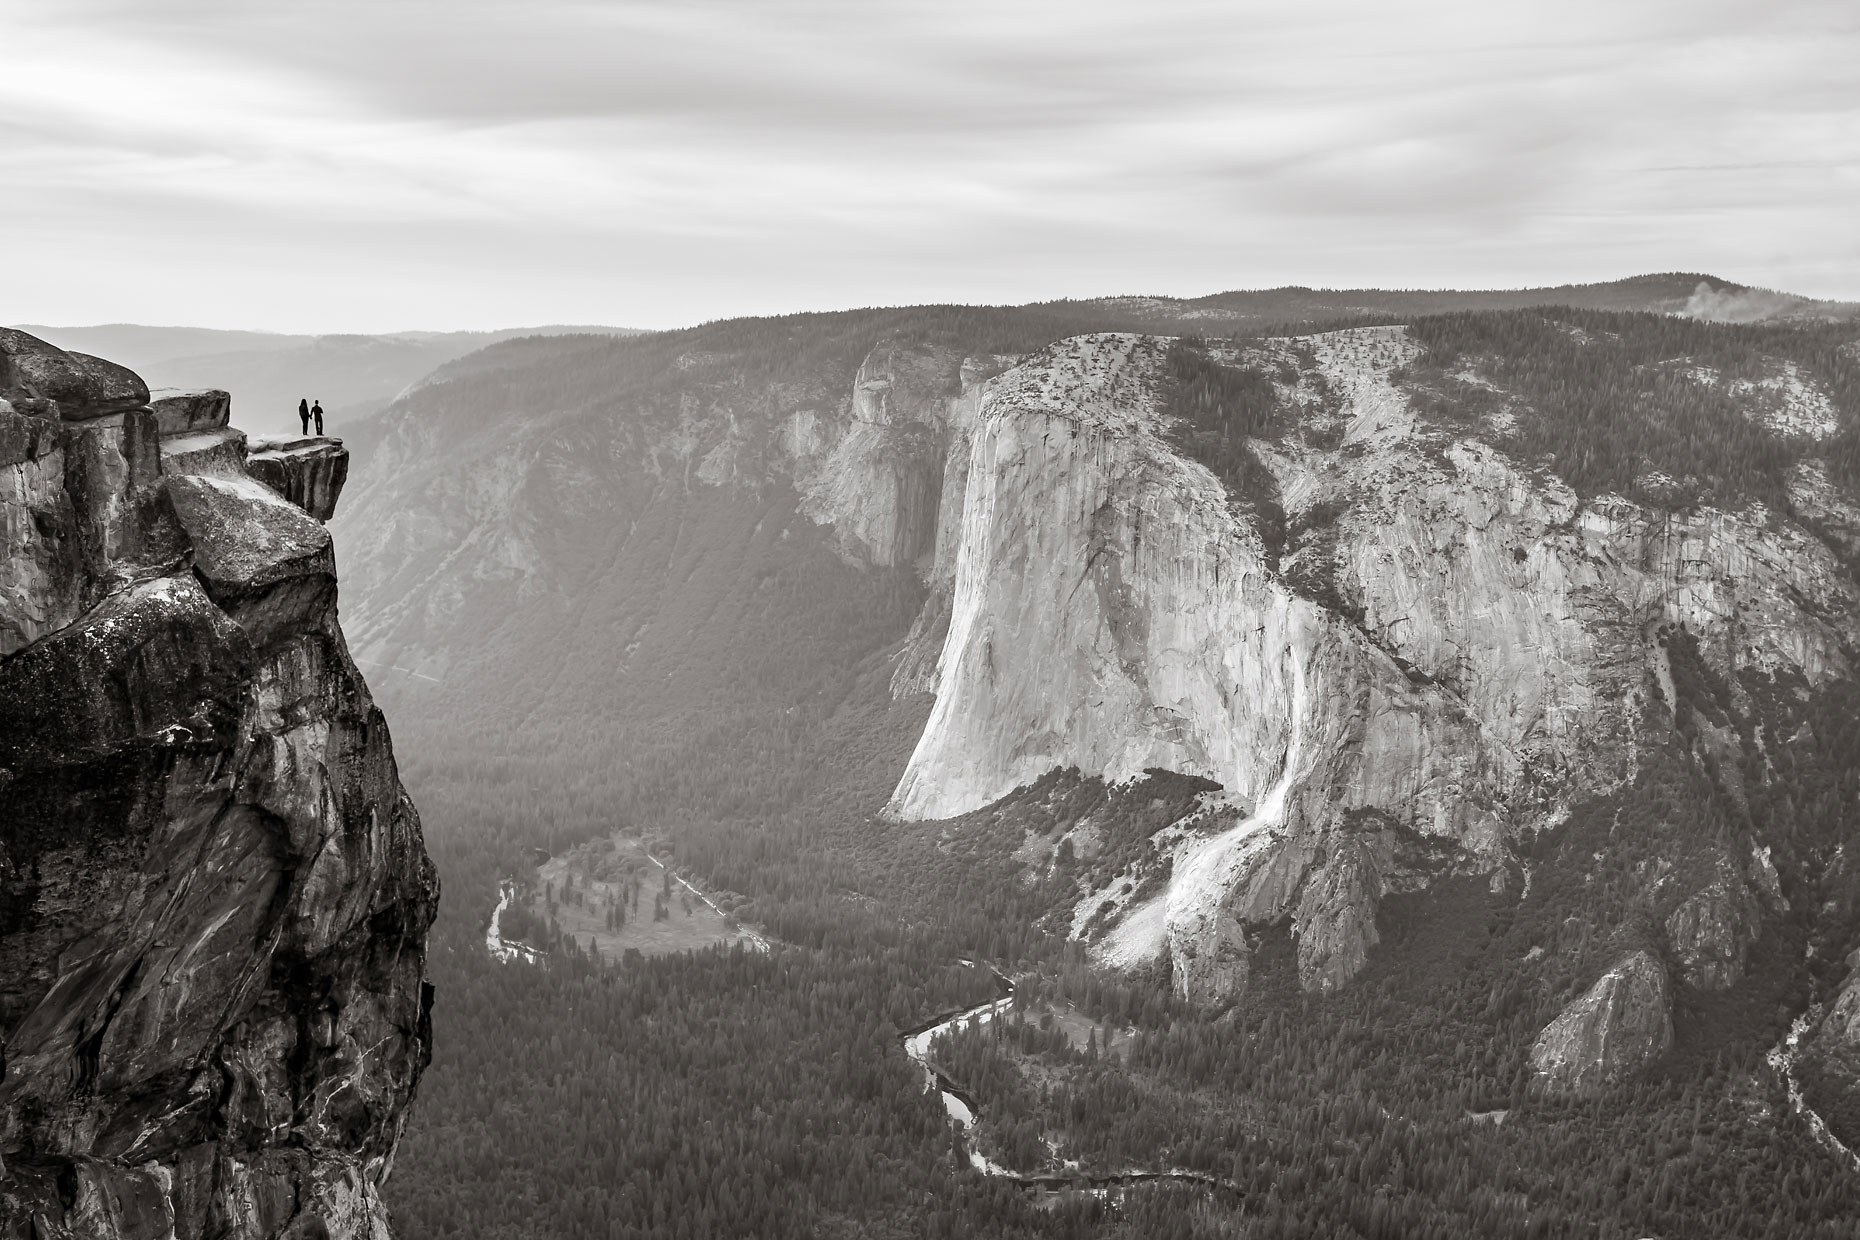 Taft Point adventure photography session in Yosemite.